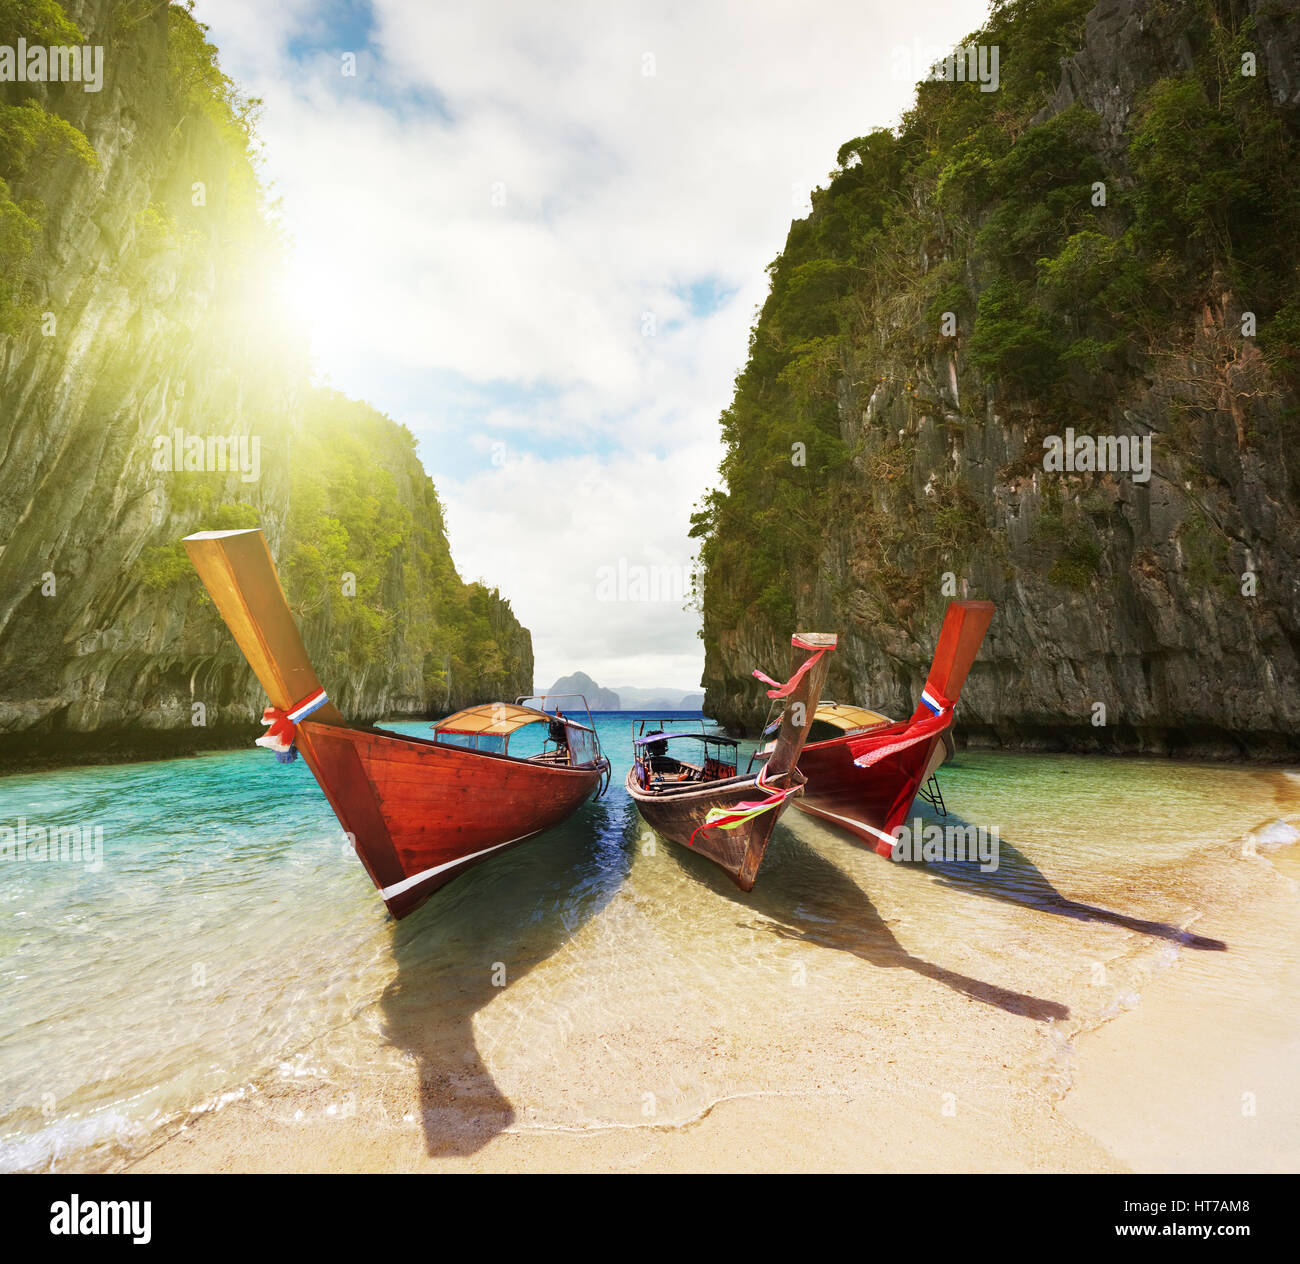 Boats on the beach inside small laguna - Stock Image